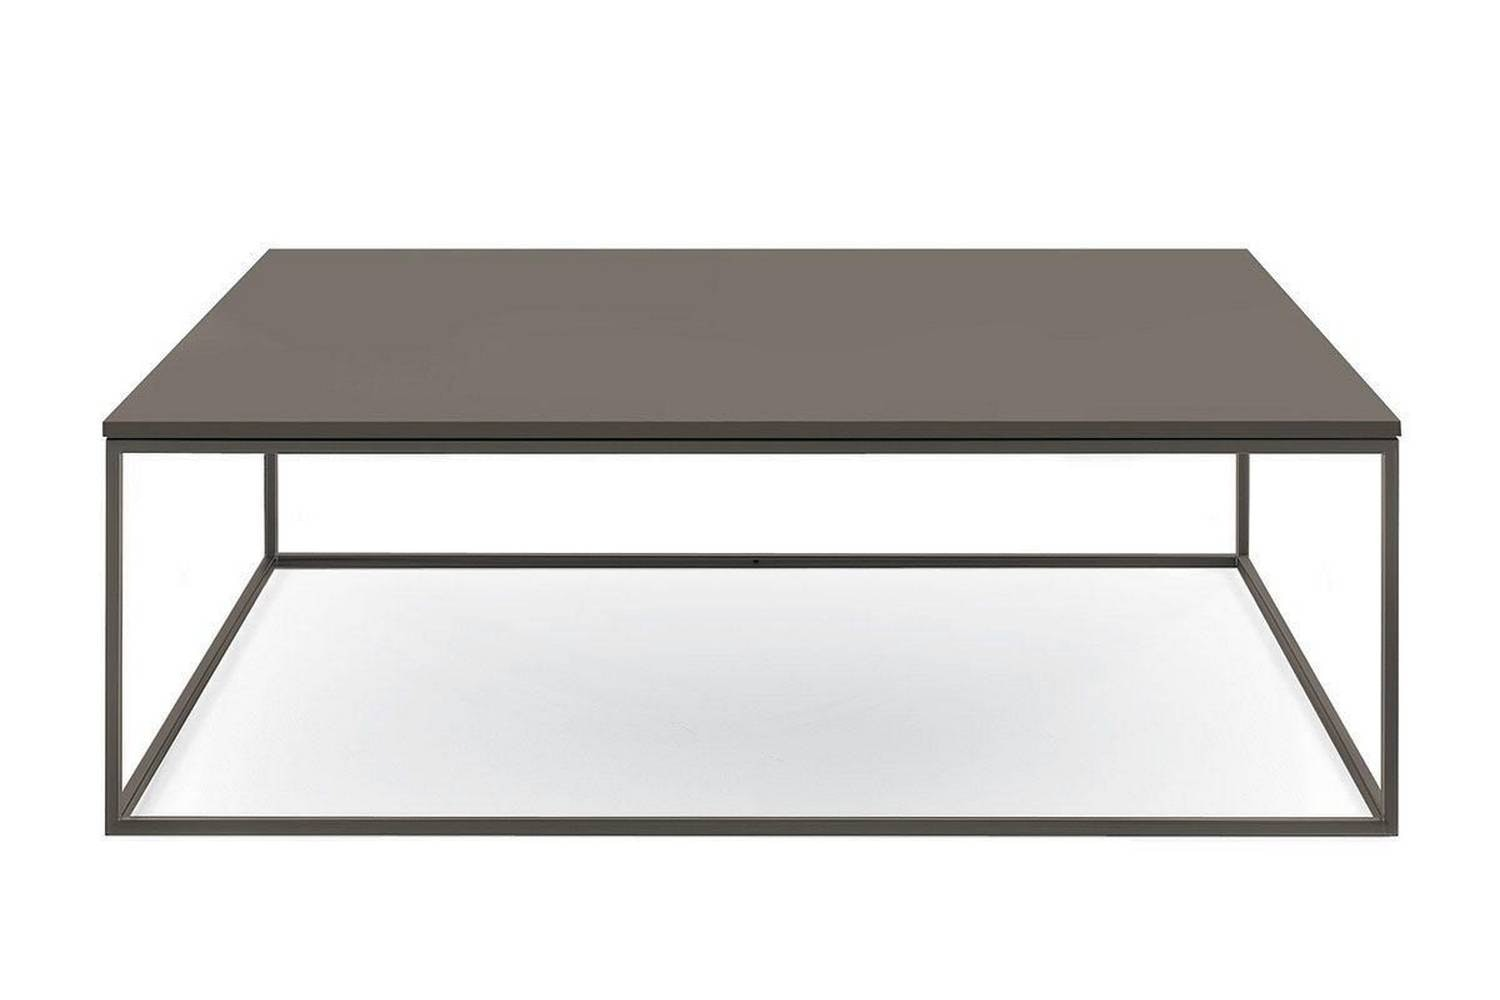 Edge Coffee Table by Paolo Piva for Poliform